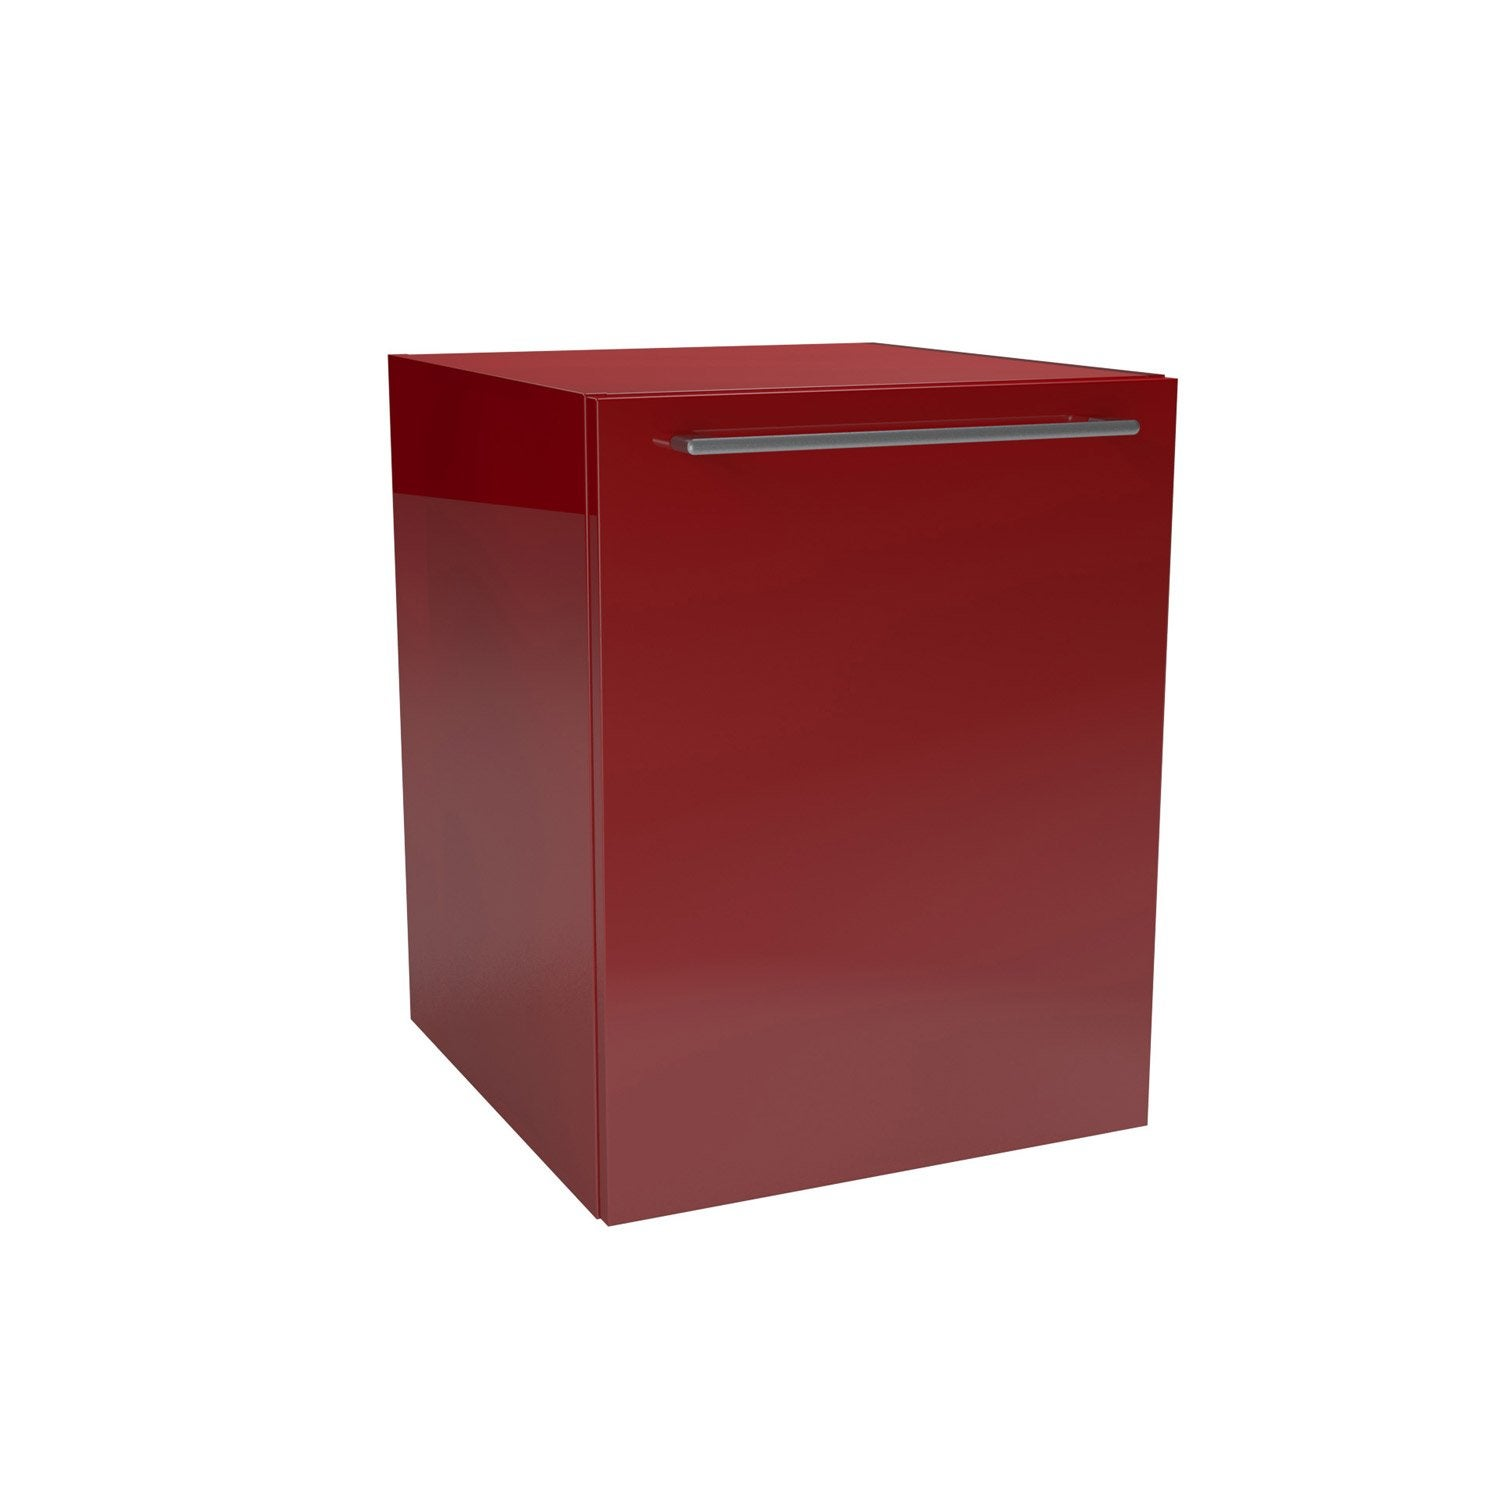 Caisson meuble bas x x cm rouge remix leroy merlin - Meuble a chaussure leroy merlin ...